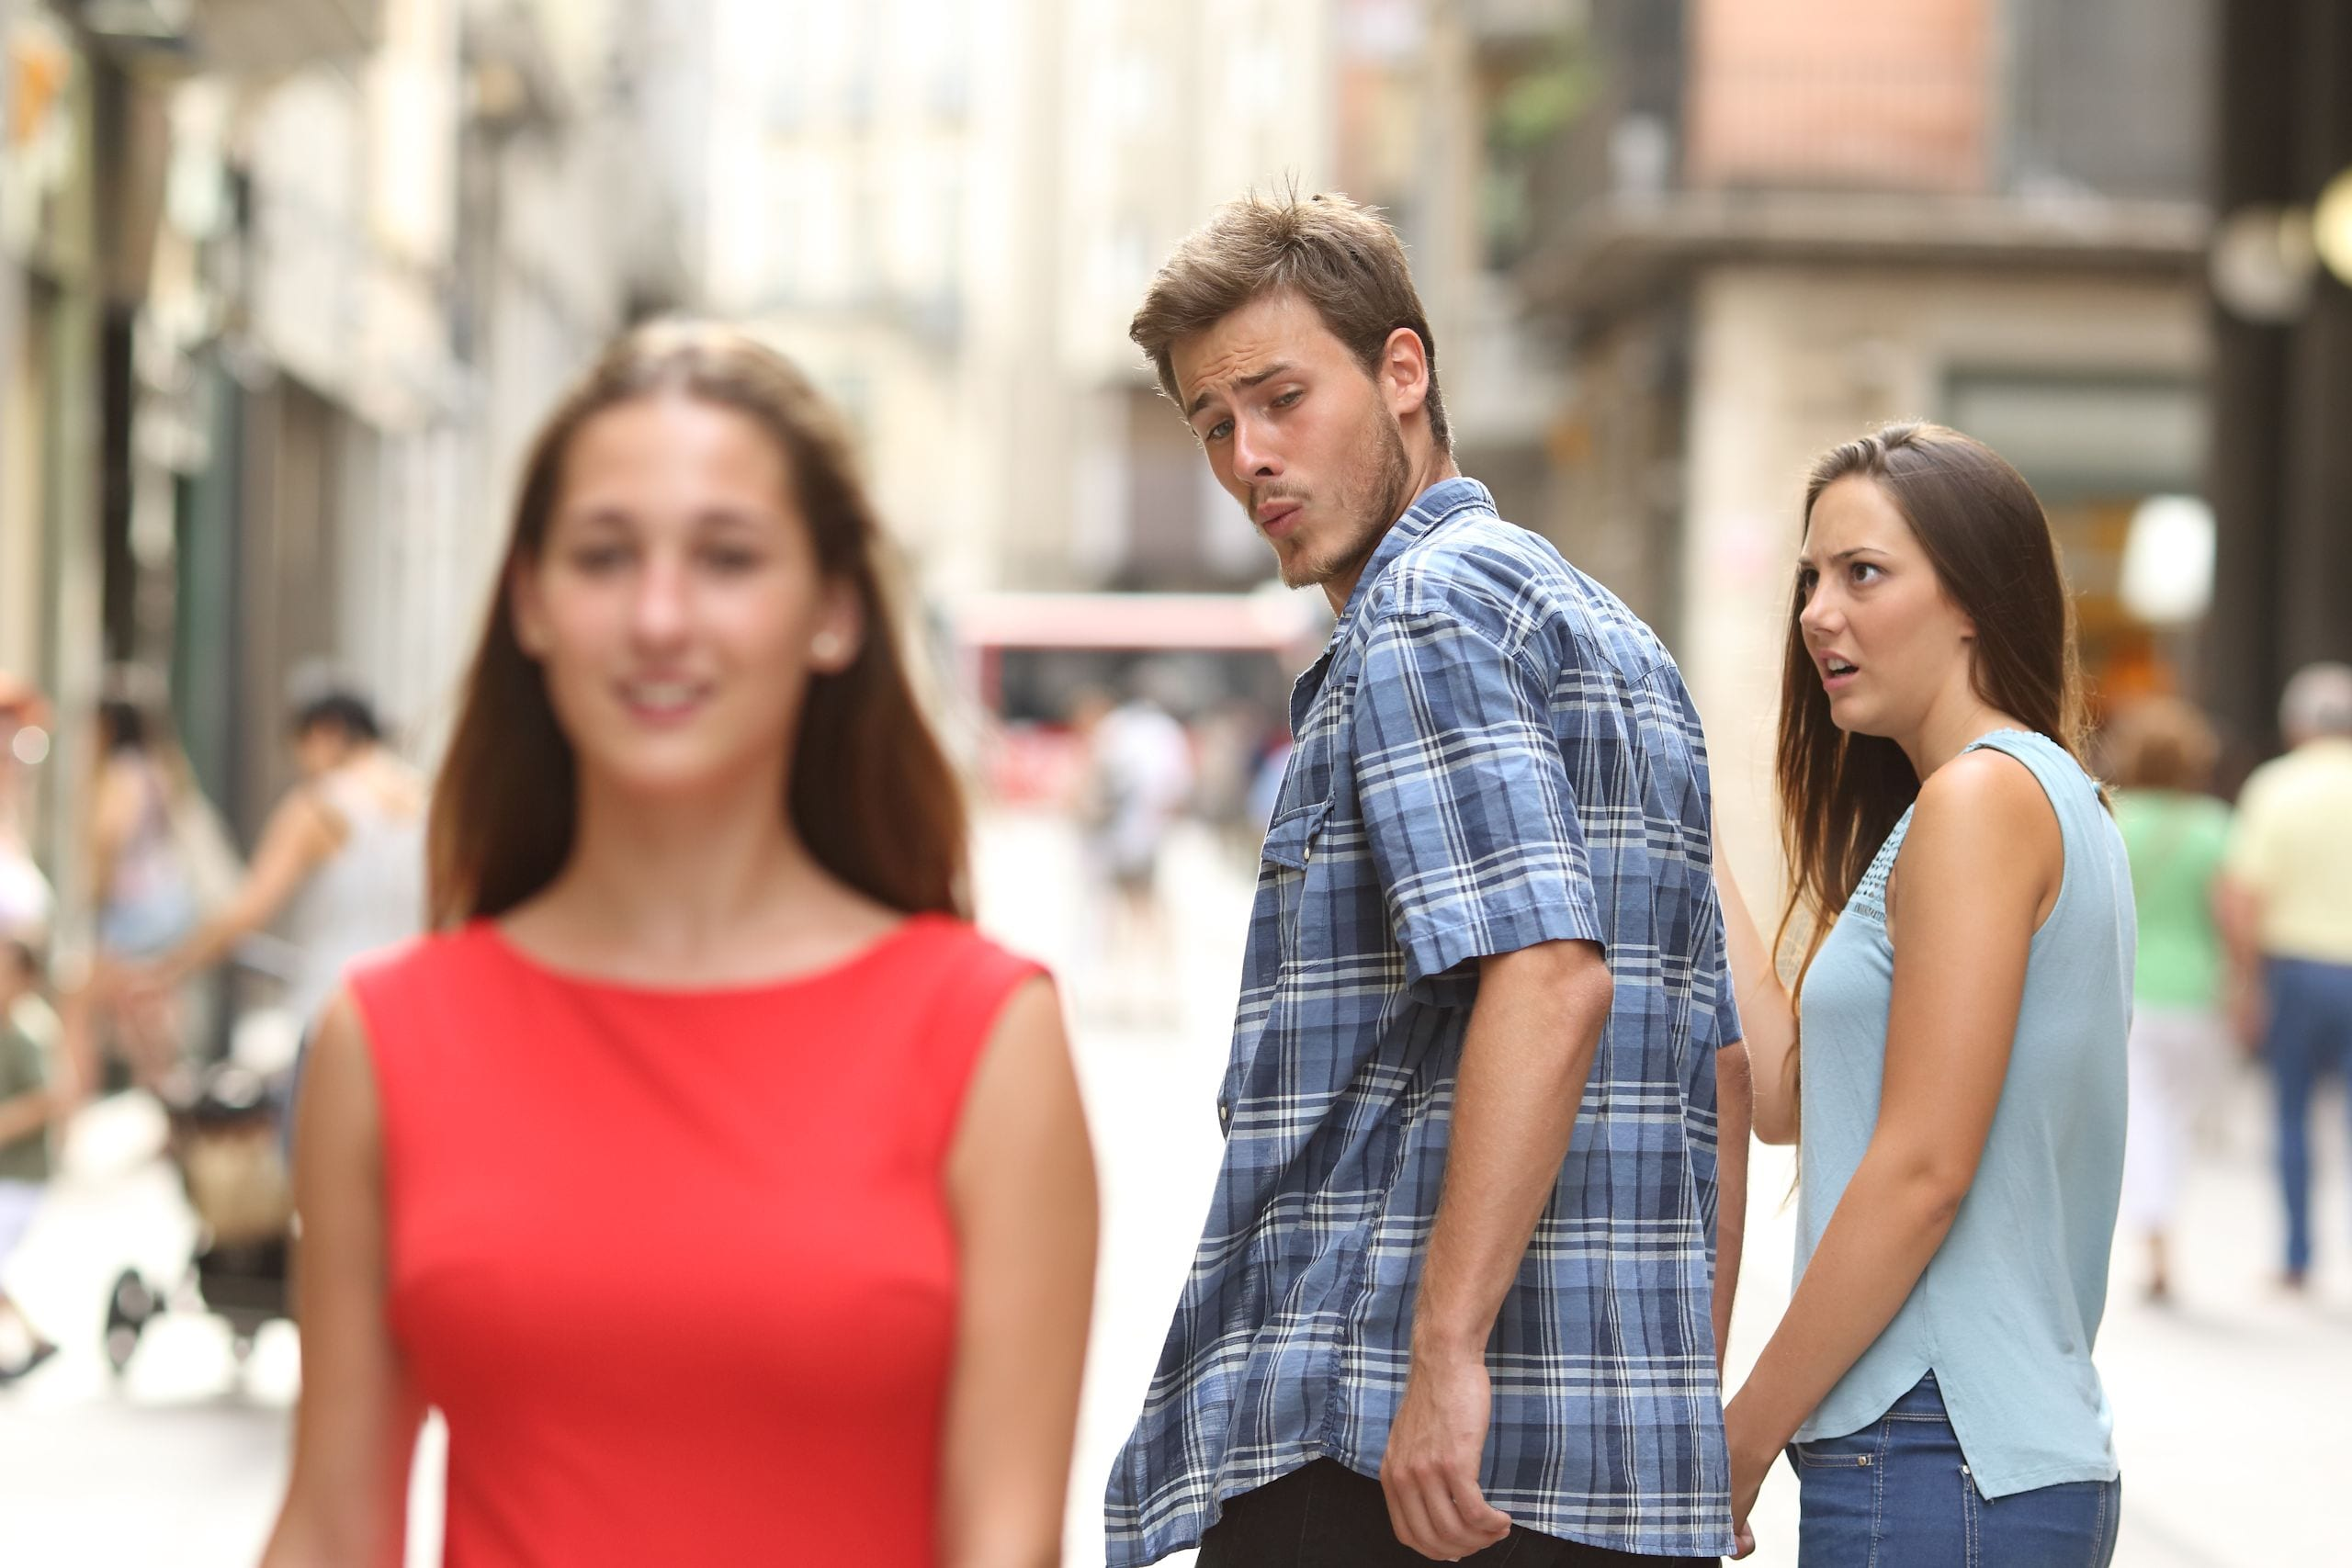 Disloyal man walking with his girlfriend and looking amazed at another seductive girl.